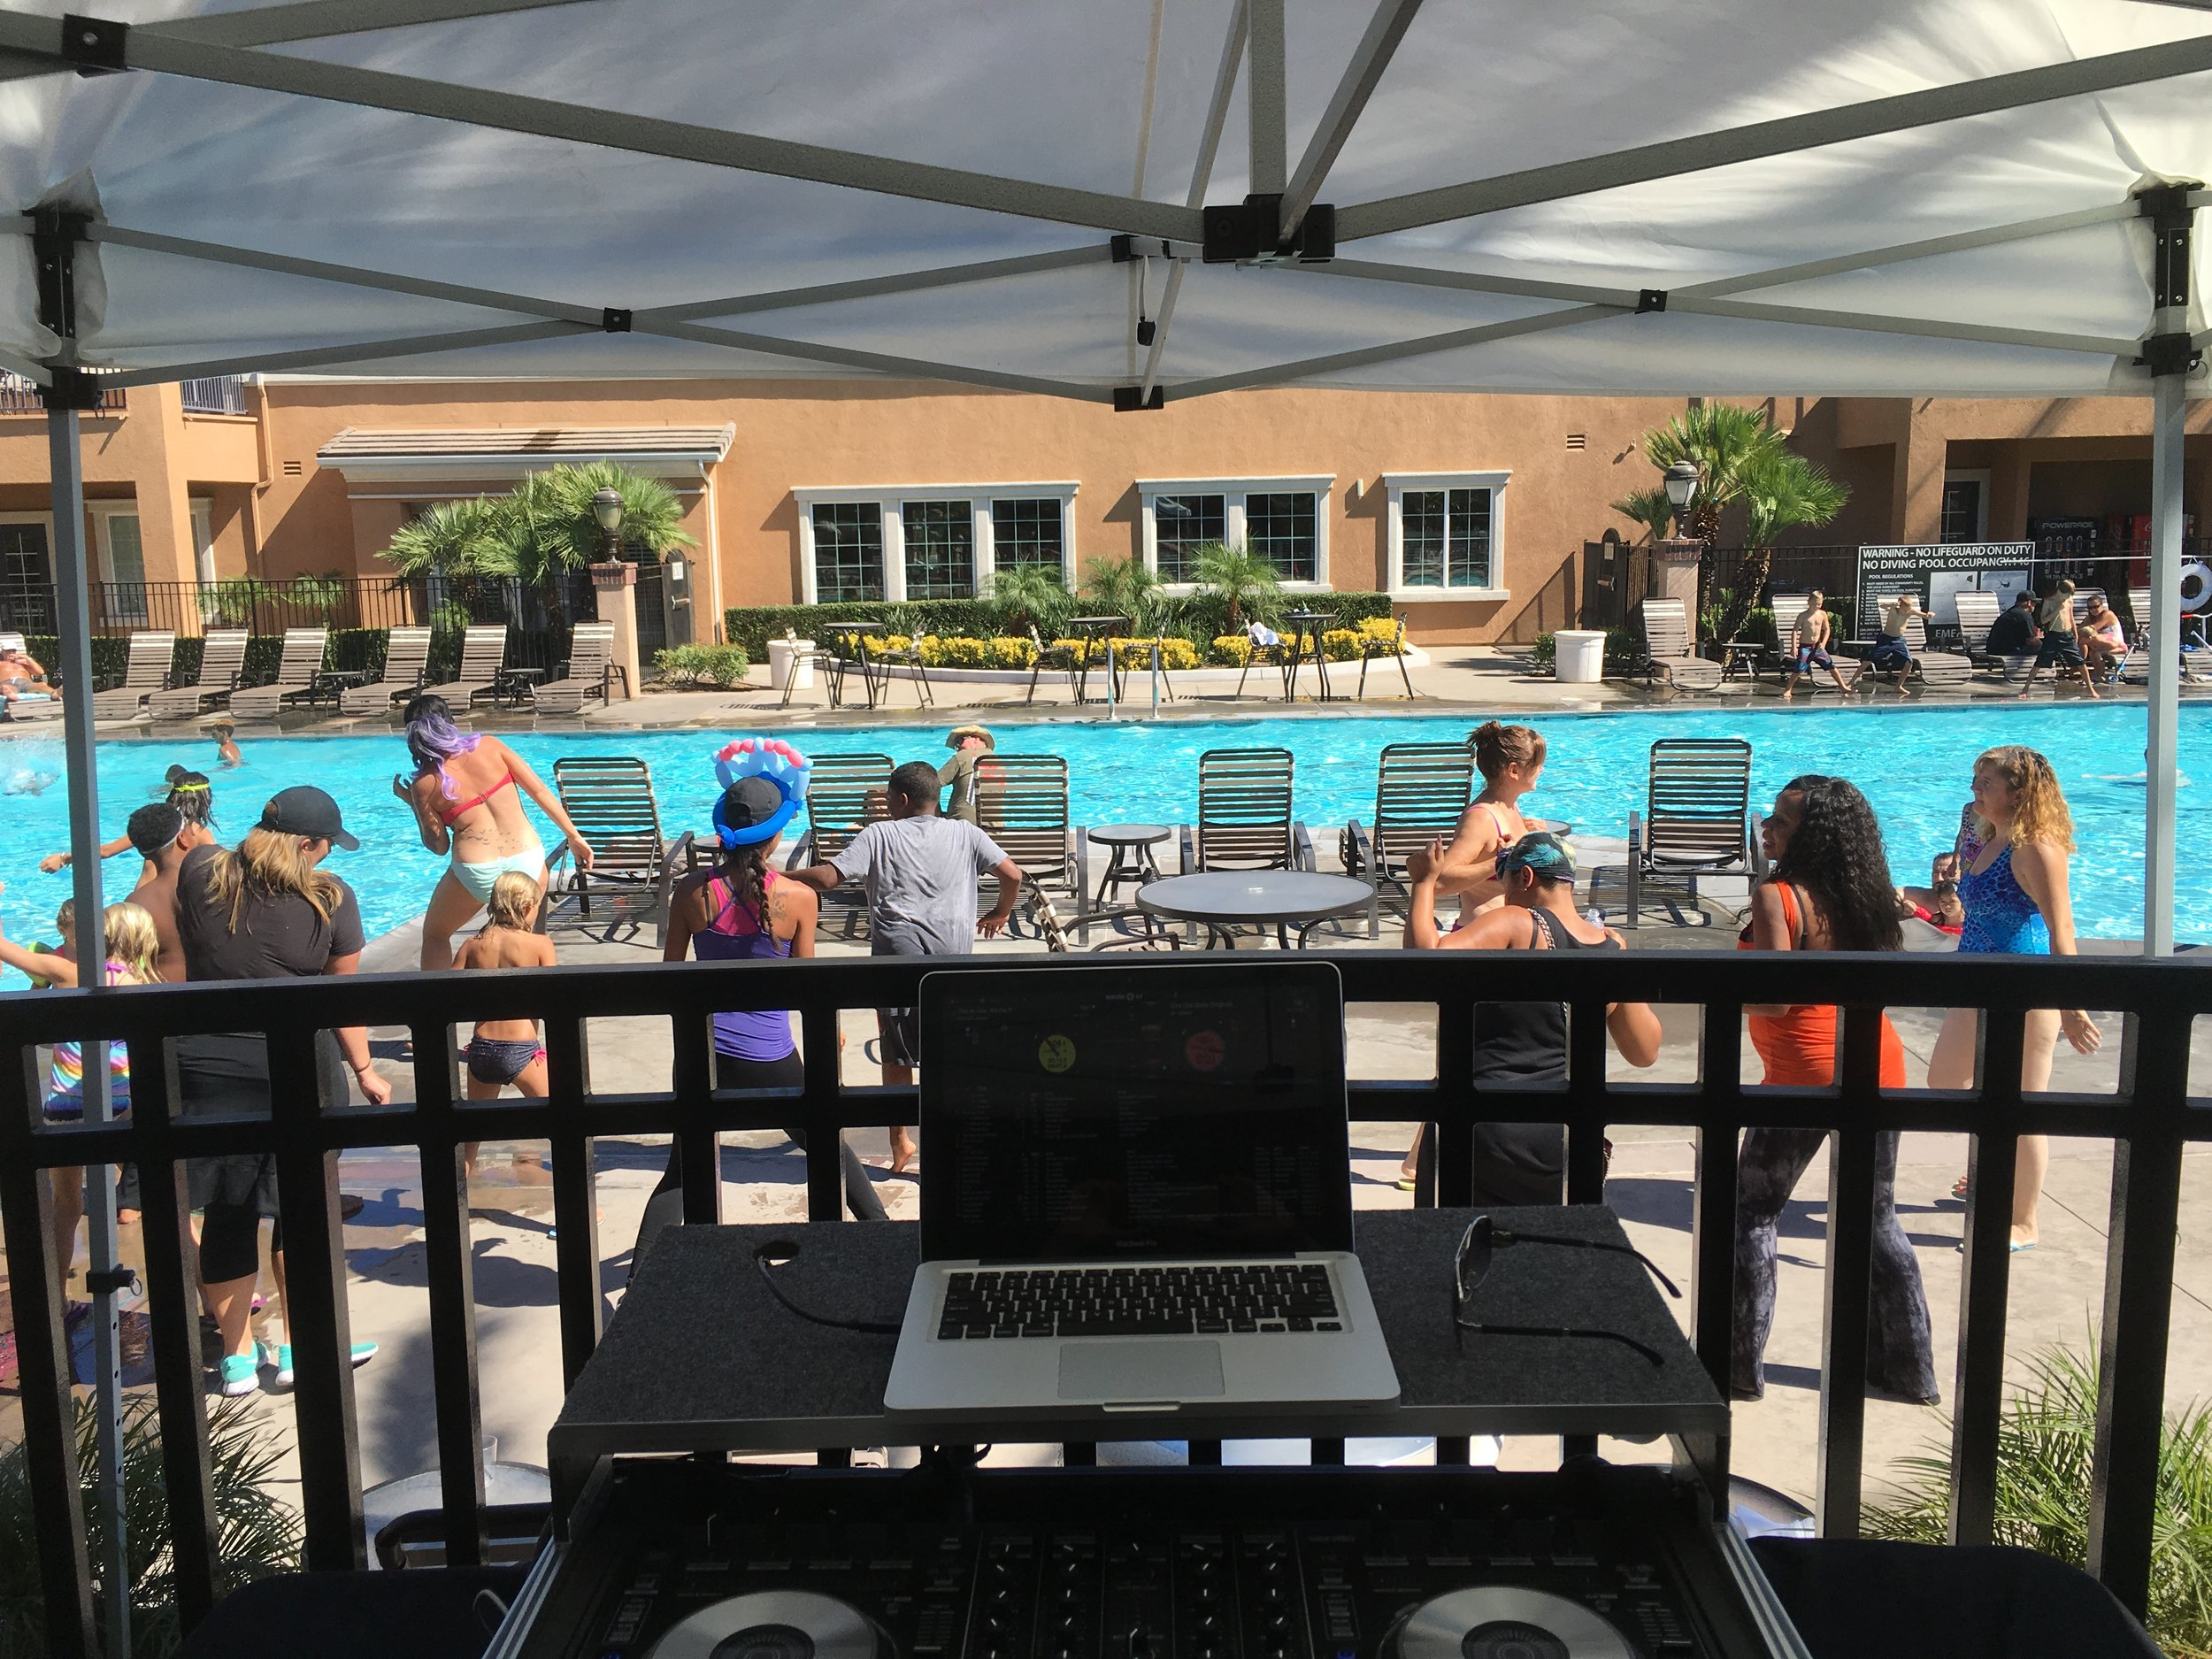 Pool Party Event - Rancho Cucamonga CA